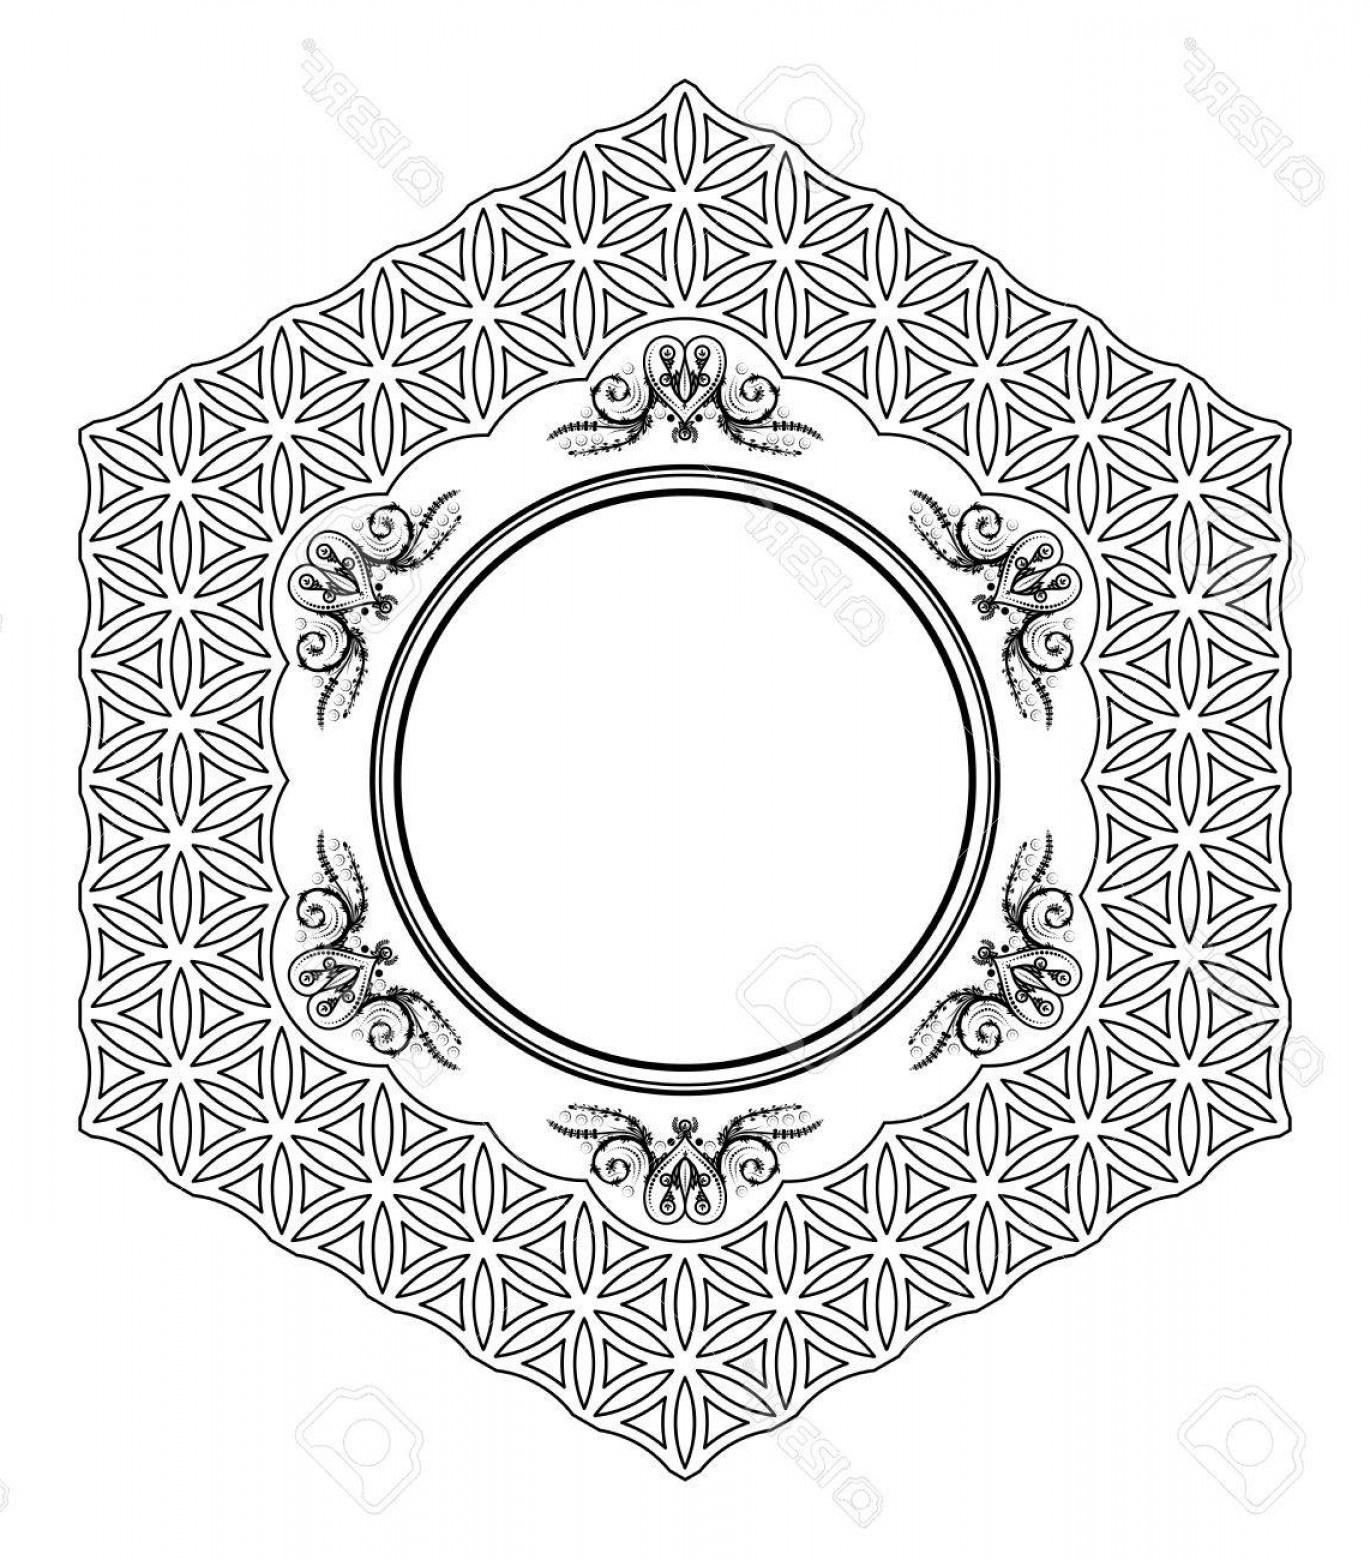 Florid Vector Simple: Photostock Vector Decorative Hexagonal Frame From Circles With Florid Ornaments With Stylized Hearts And Leaves In The